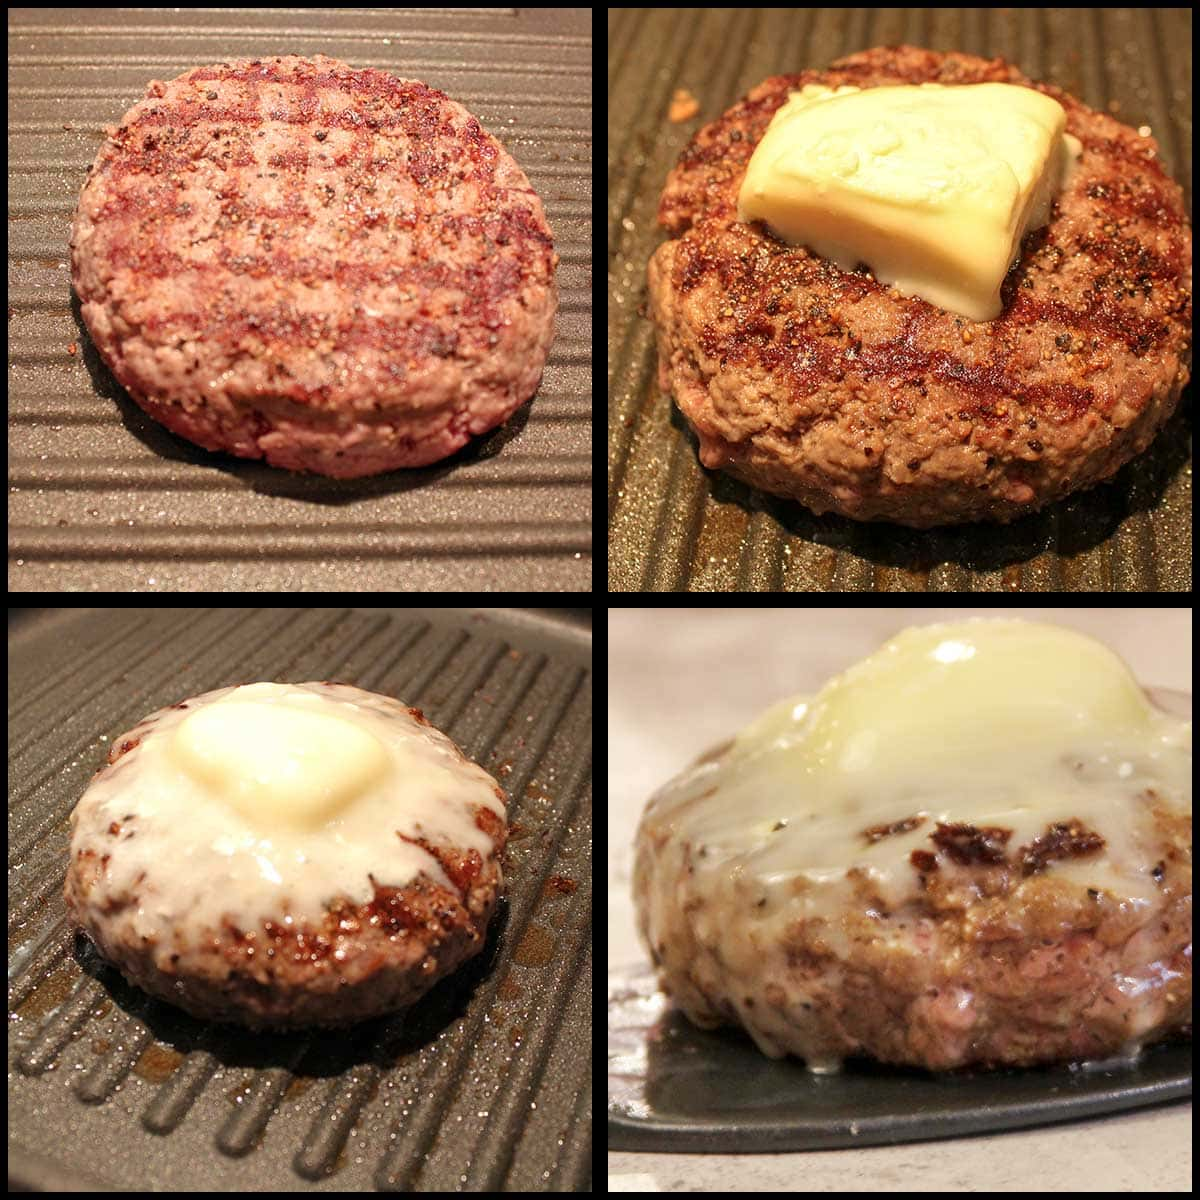 grilling burger and melting cheese